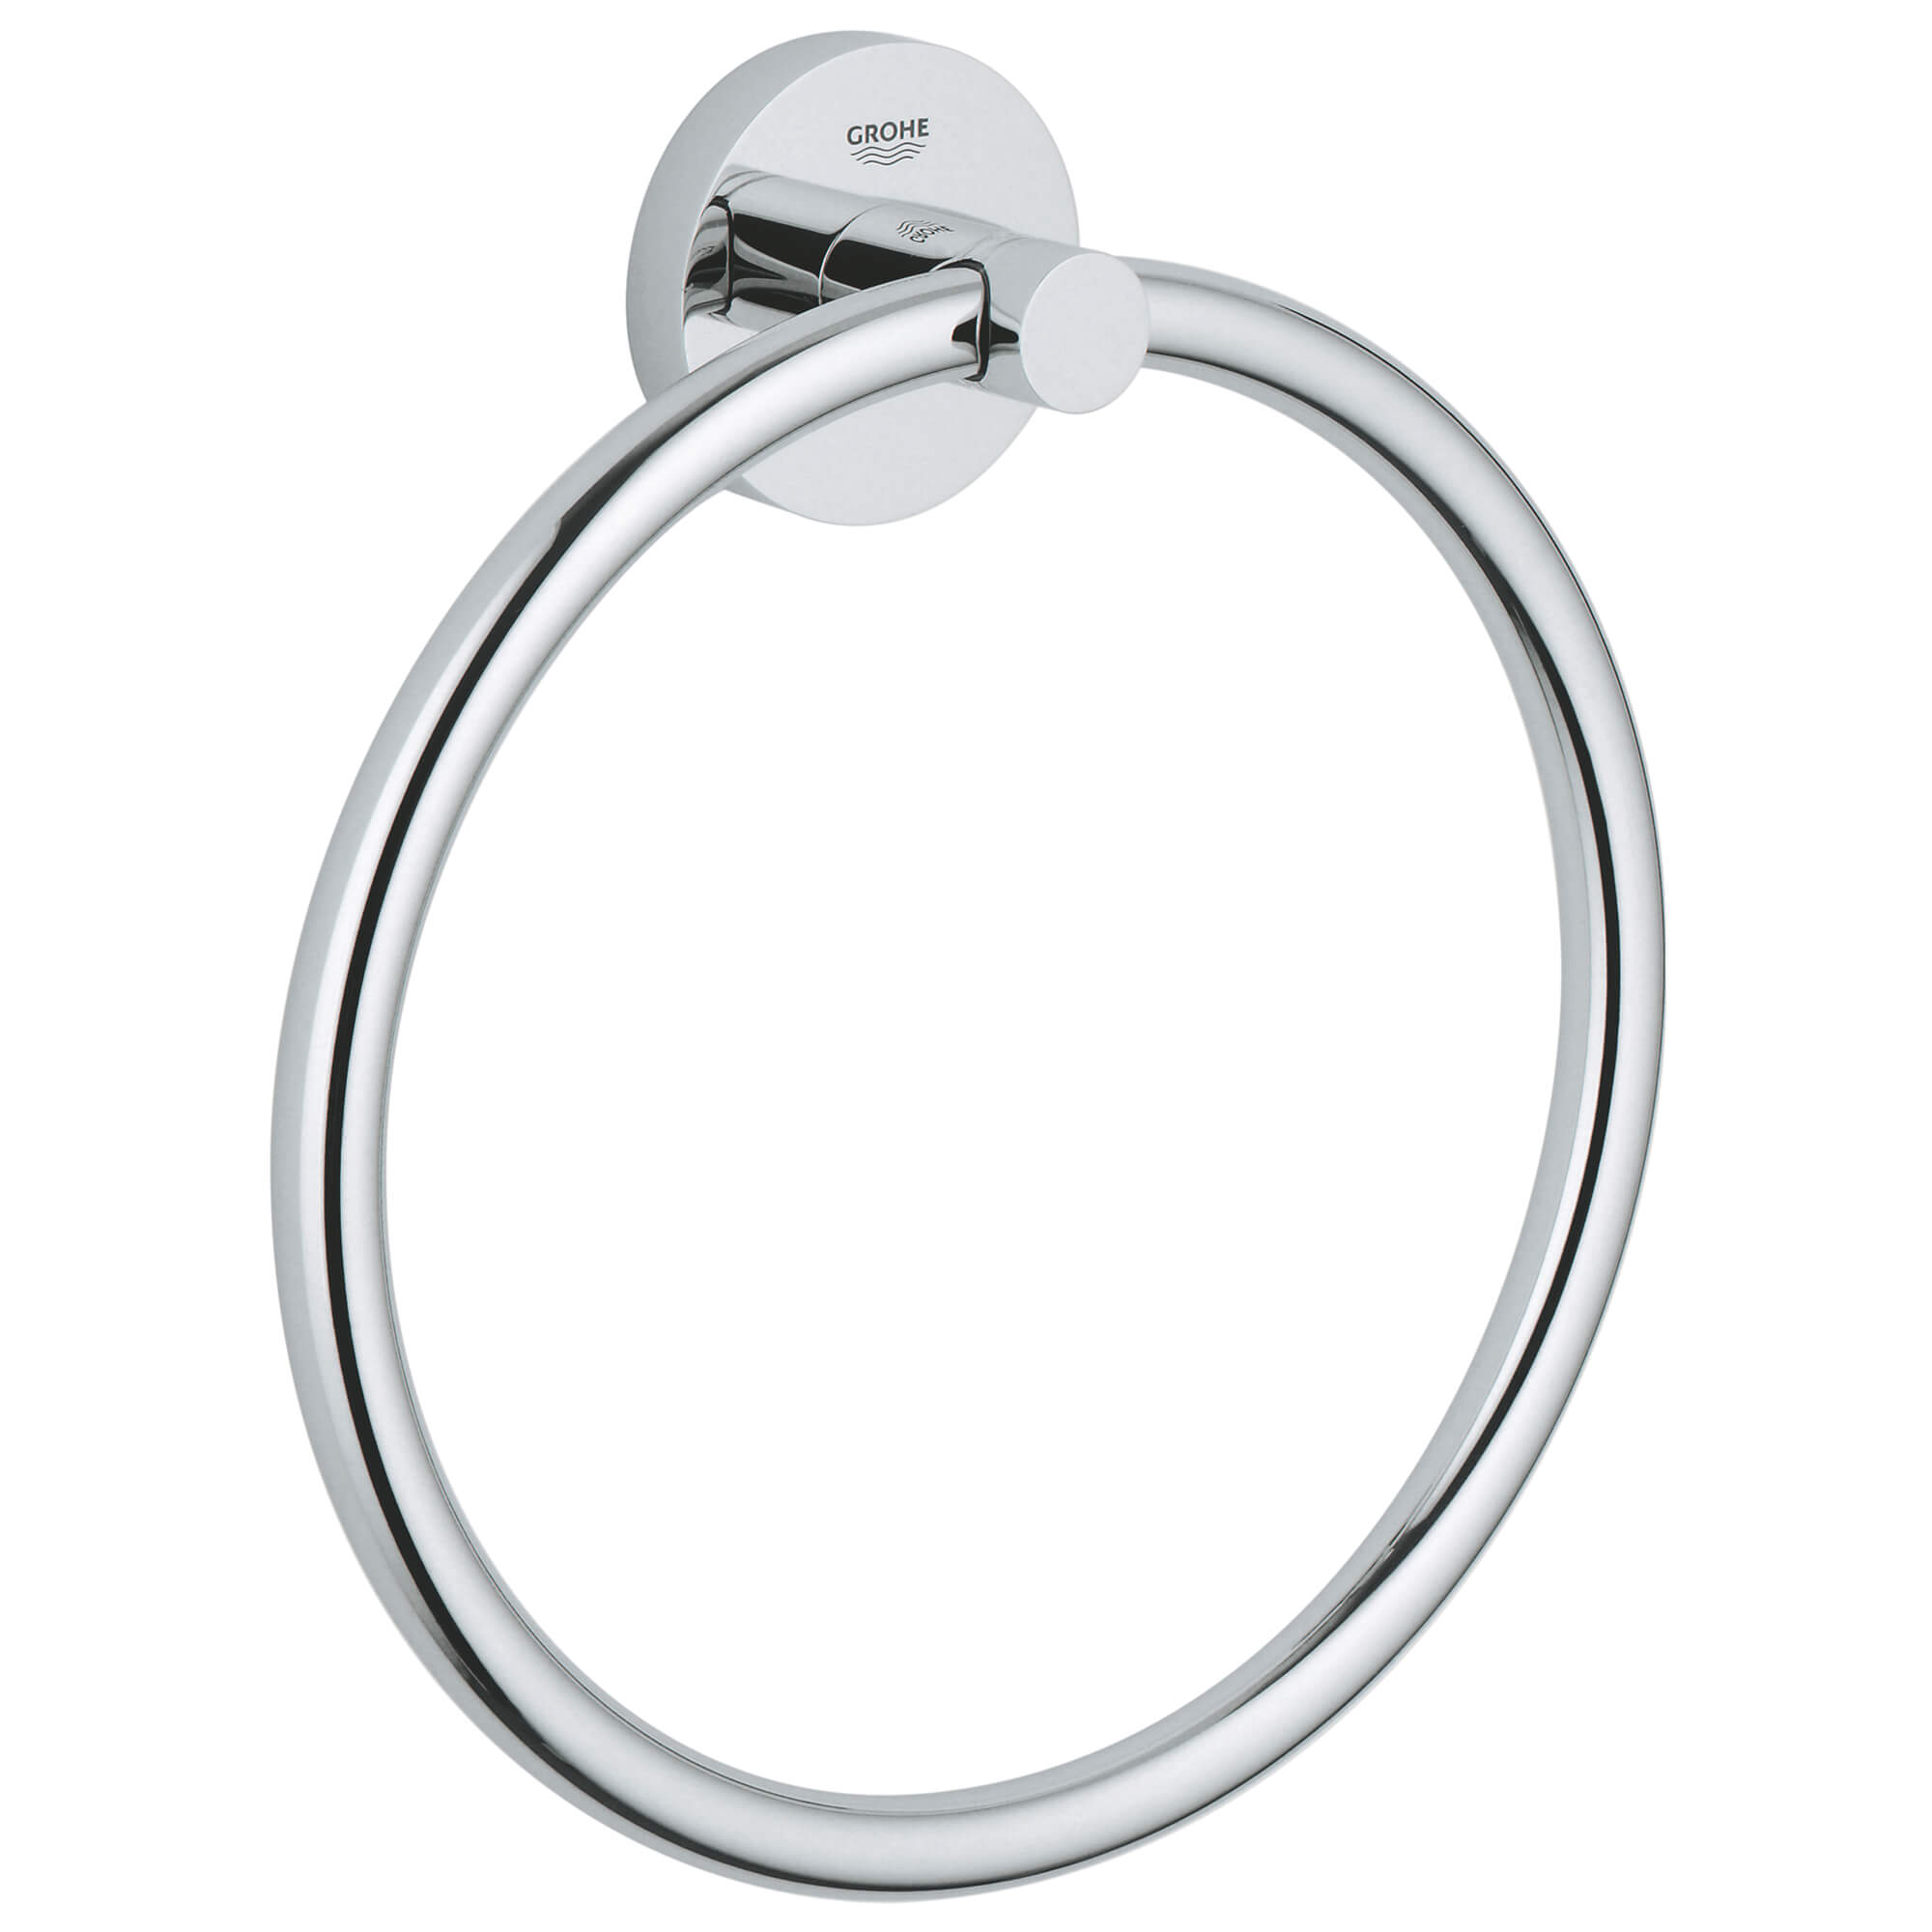 Essentials Anneau porte serviette GROHE CHROME